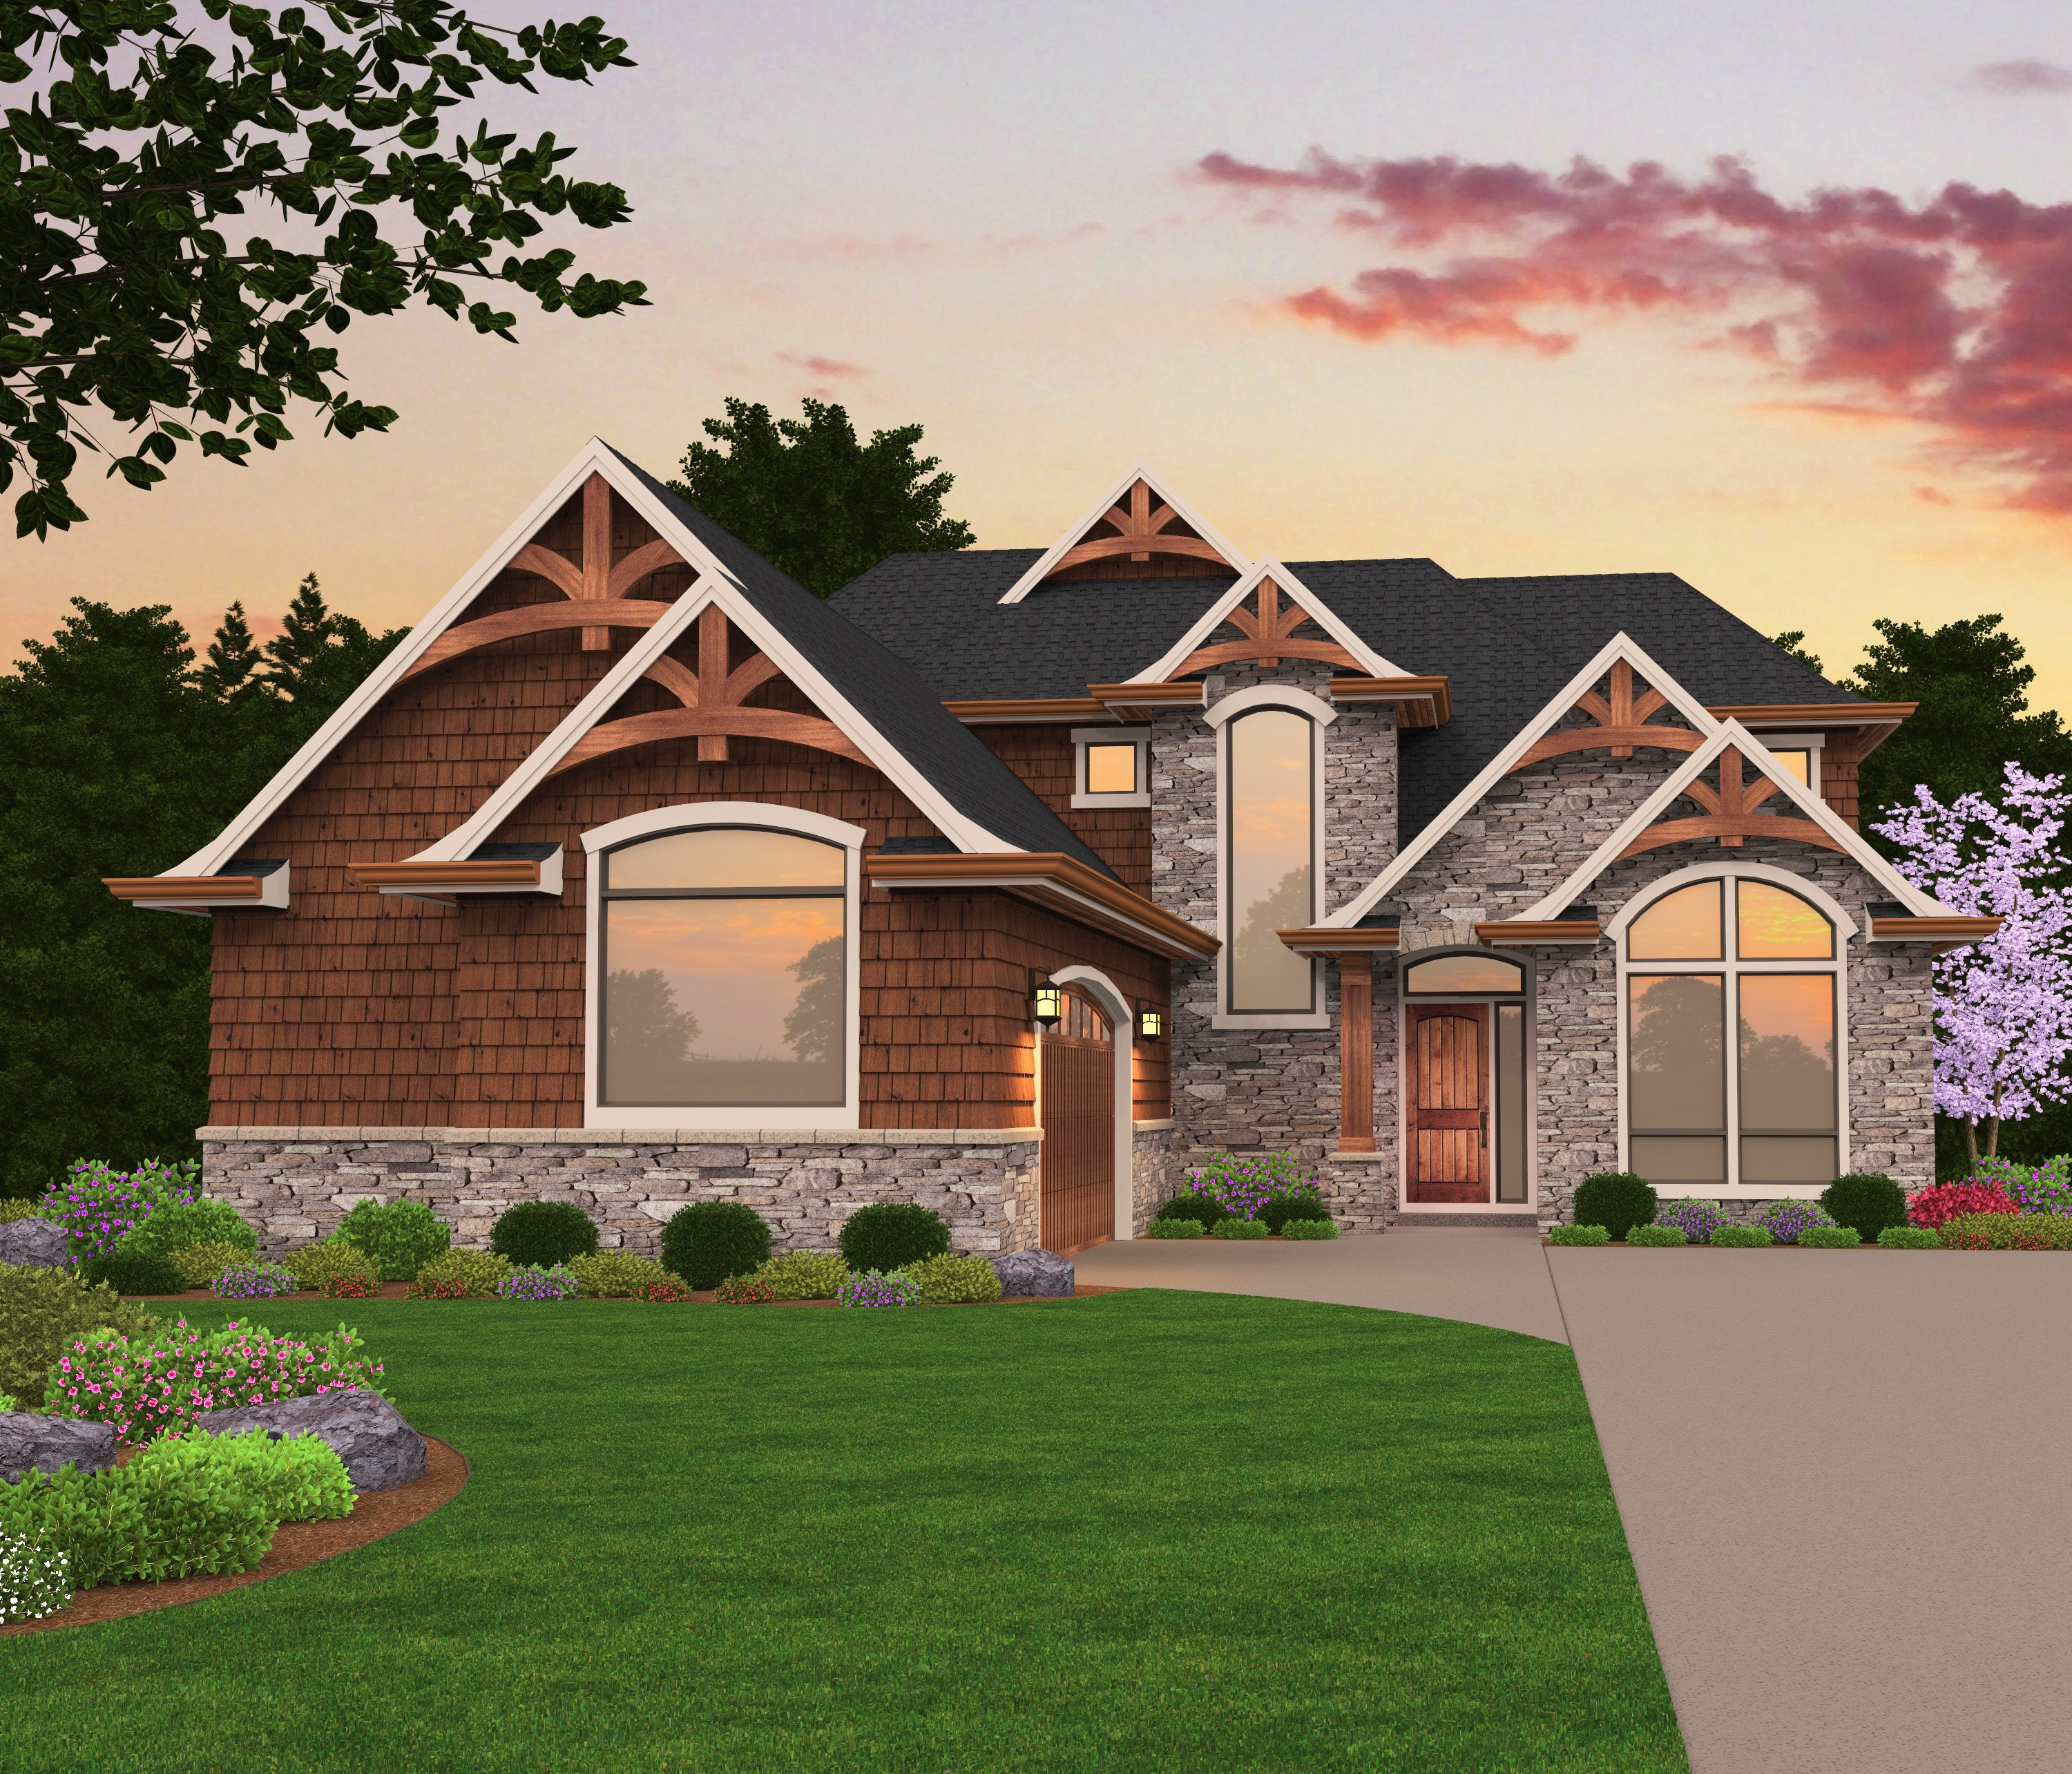 X 17 house plan designed to build lake oswego for Storybook craftsman house plans